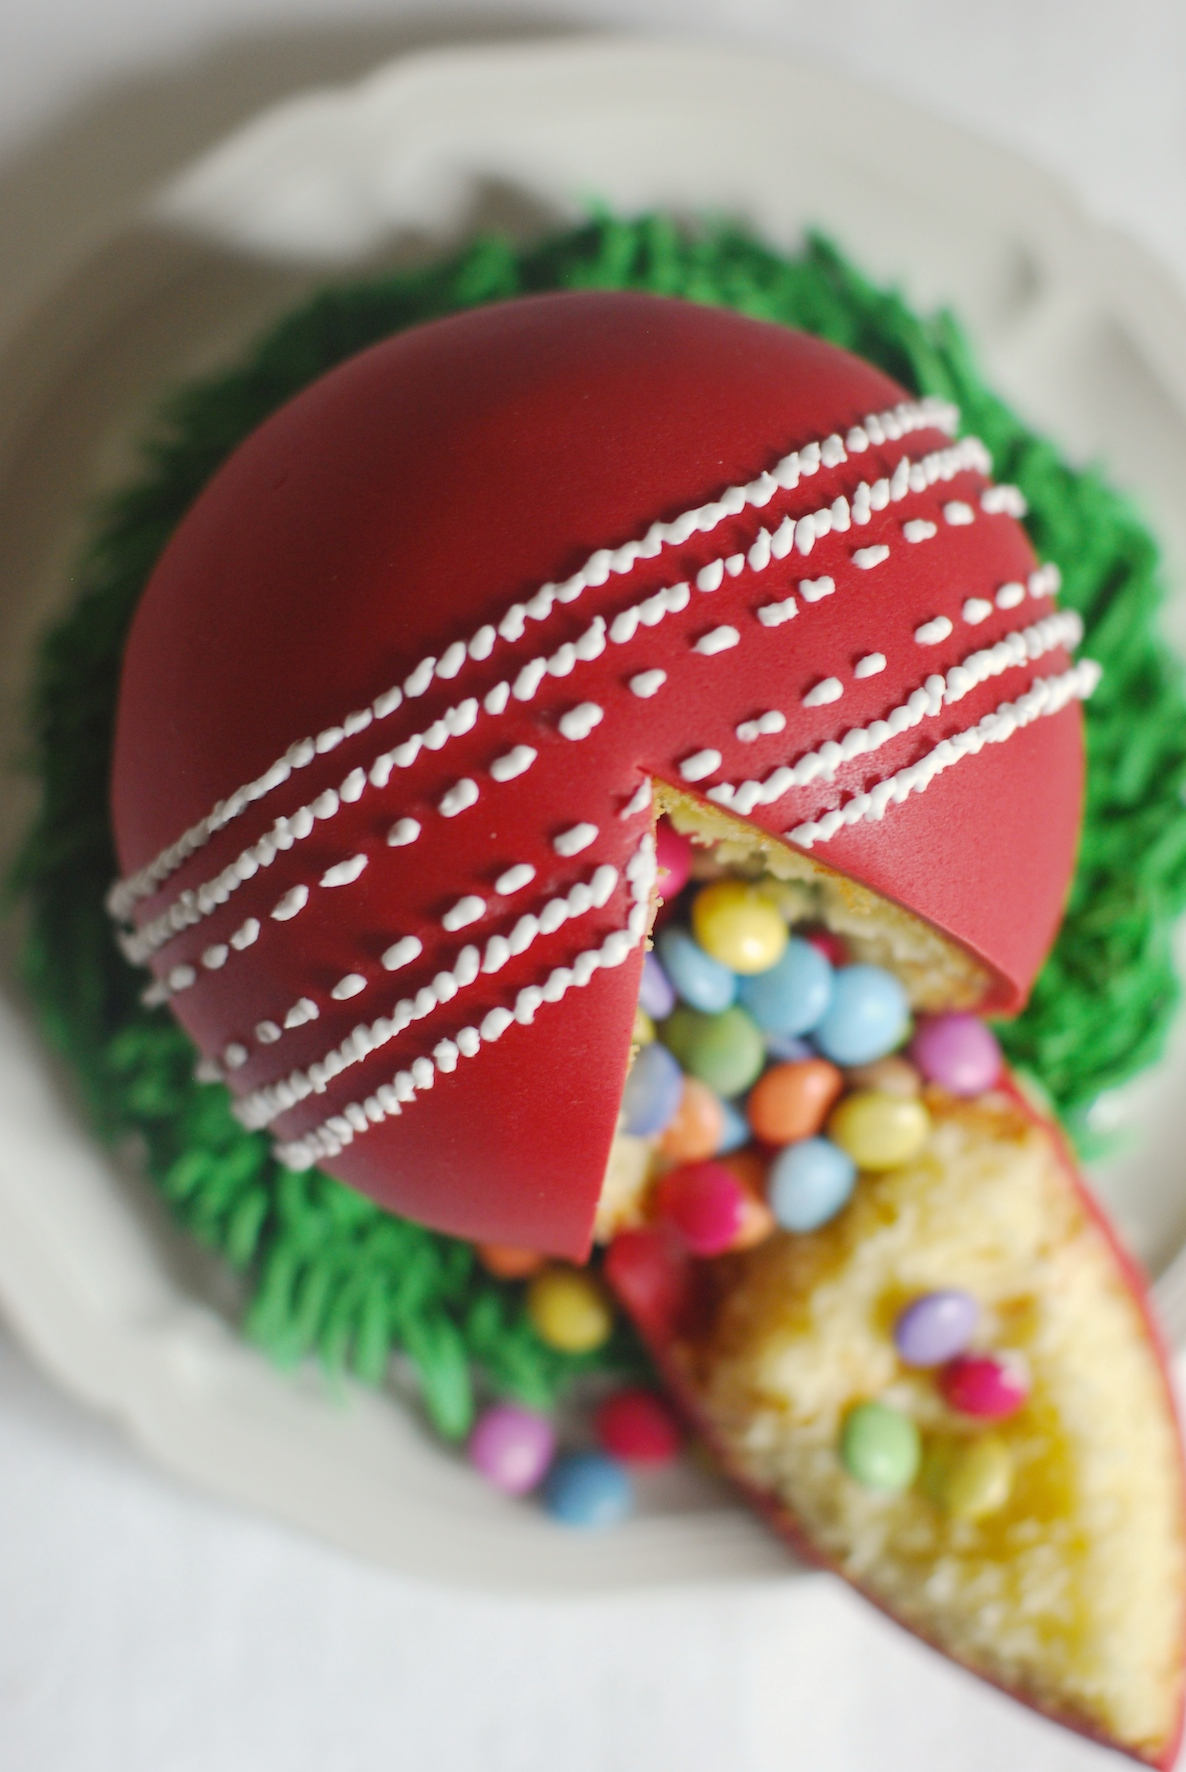 Cricket Ball Cake Images : Cricket Cake - Afternoon Crumbs